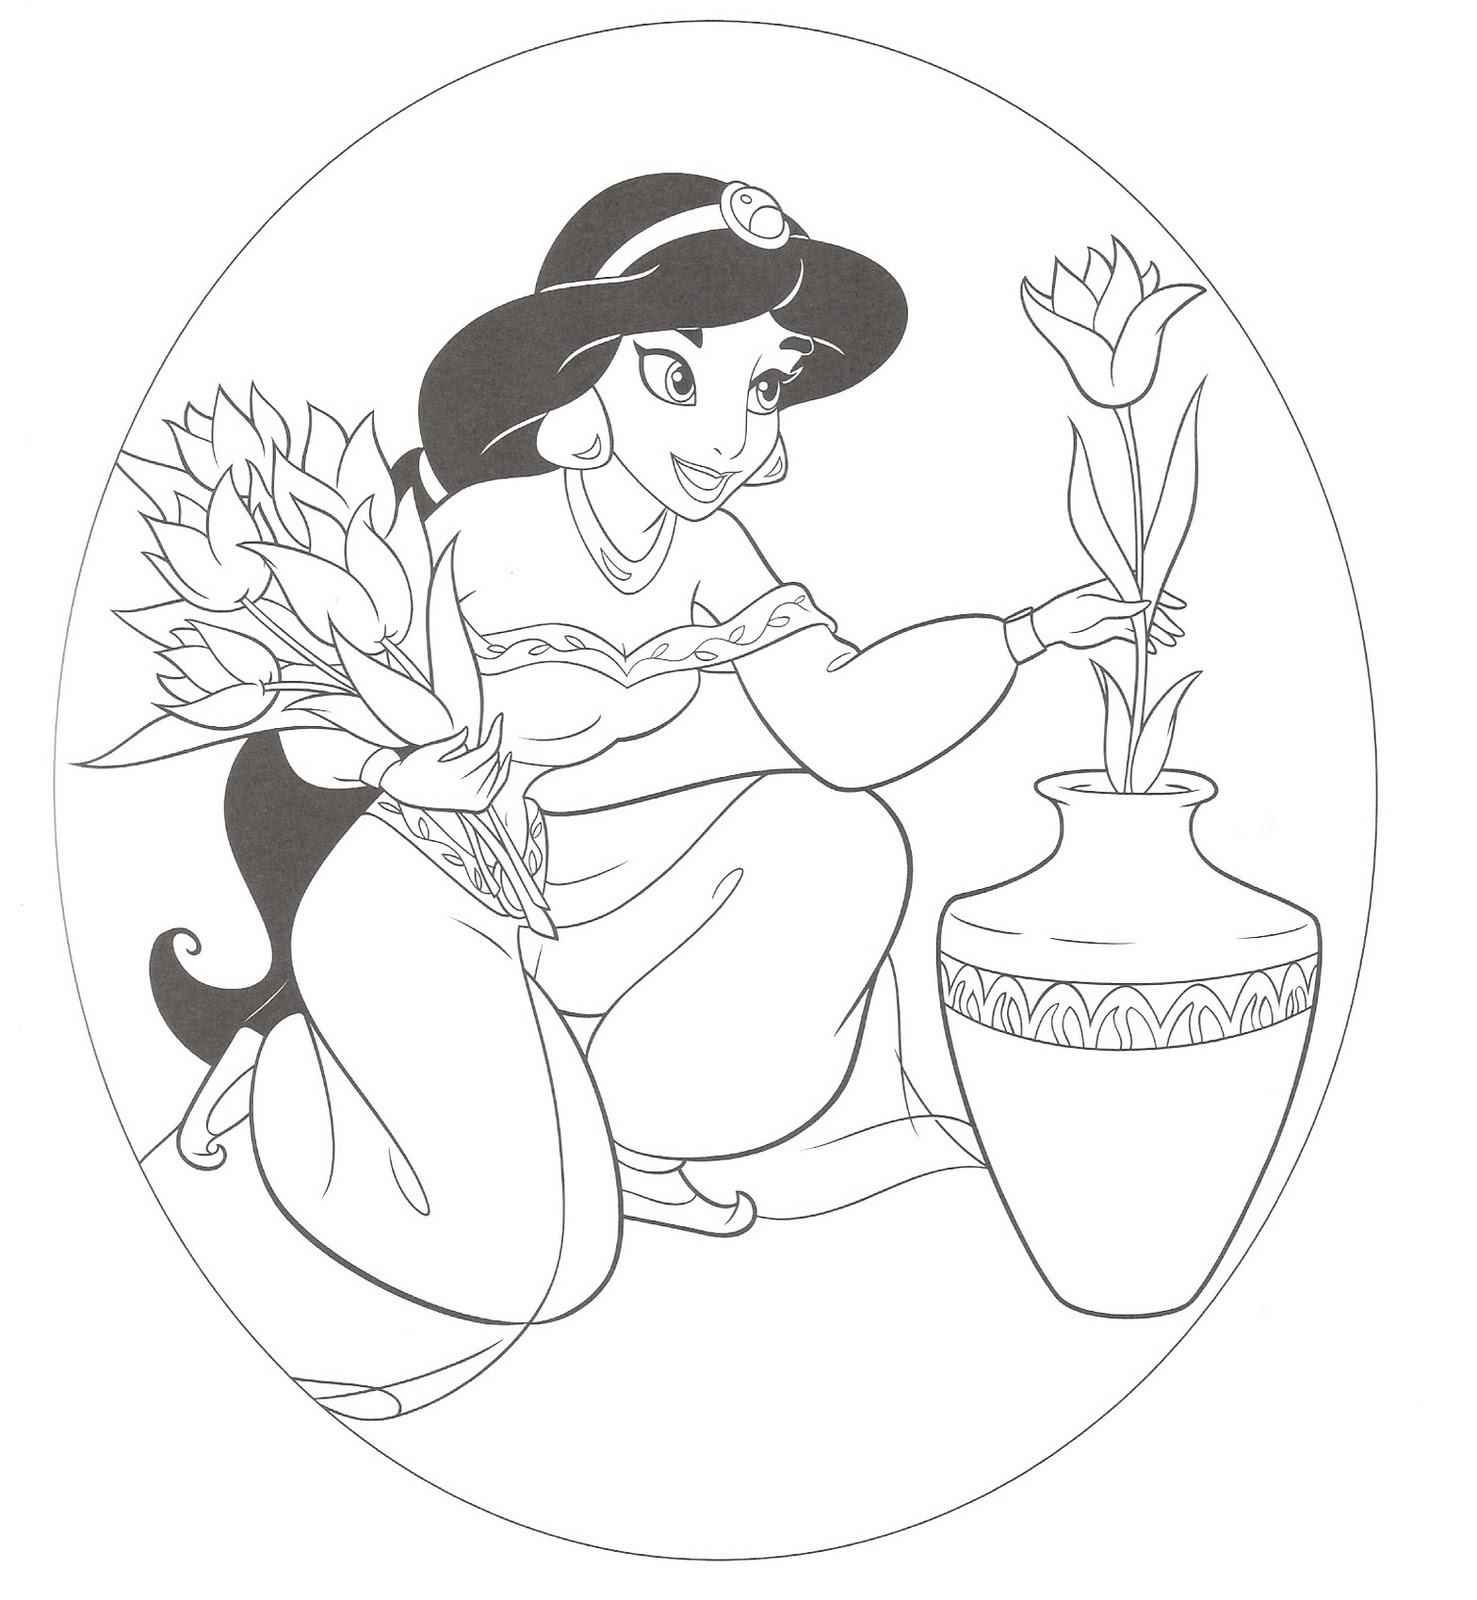 Disney Princess Coloring Pages For Kids Princess Picture To Color Free Coloring Sheets